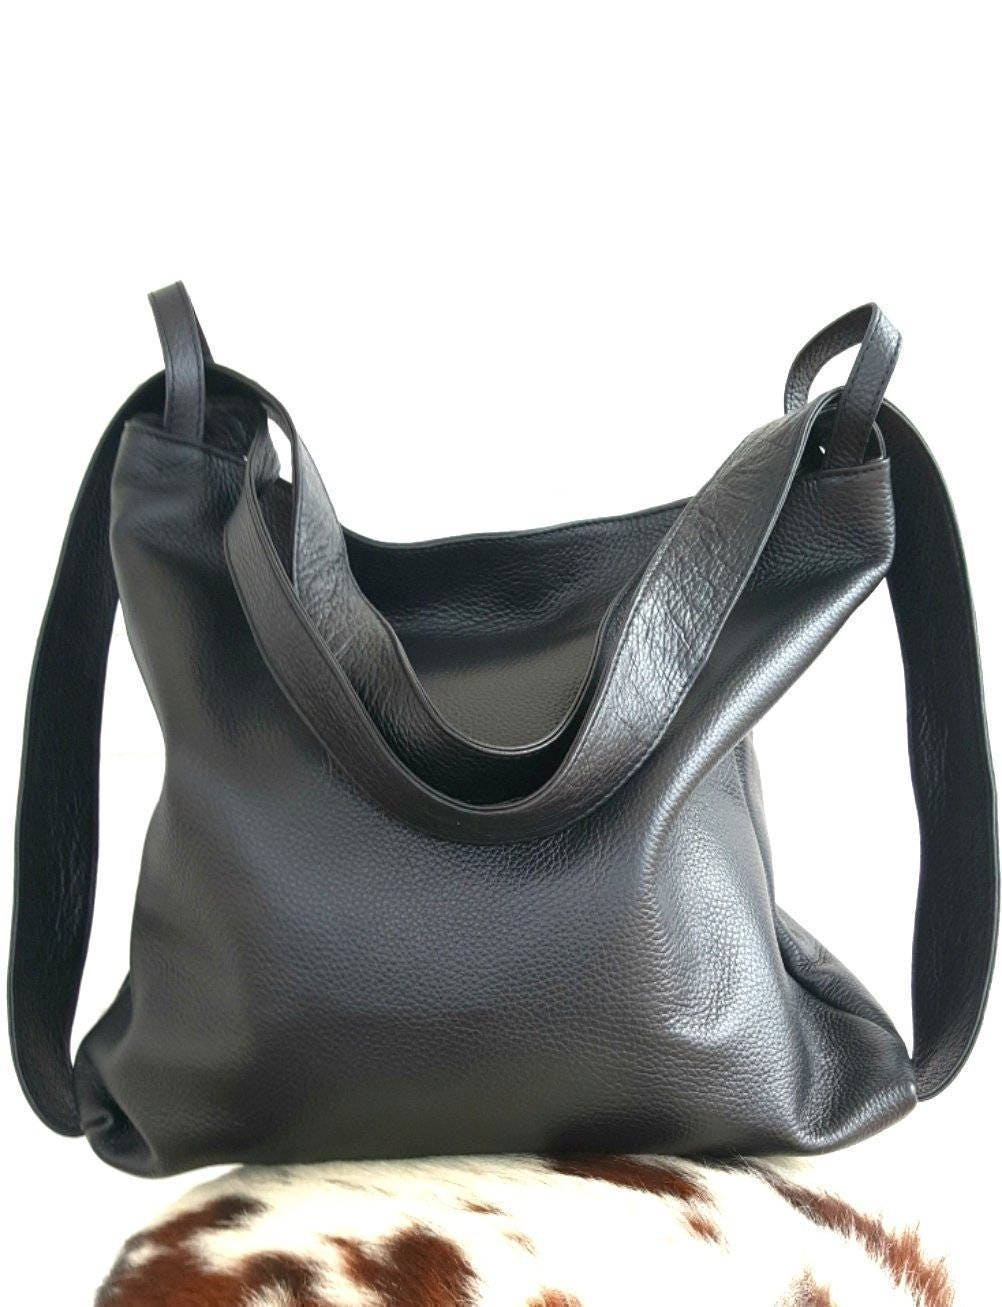 Bag convertible to leather backpack shoulders. Handmade in Italy, black woman purse. Multipurpose bags. Urban expressions handbags by Ganza